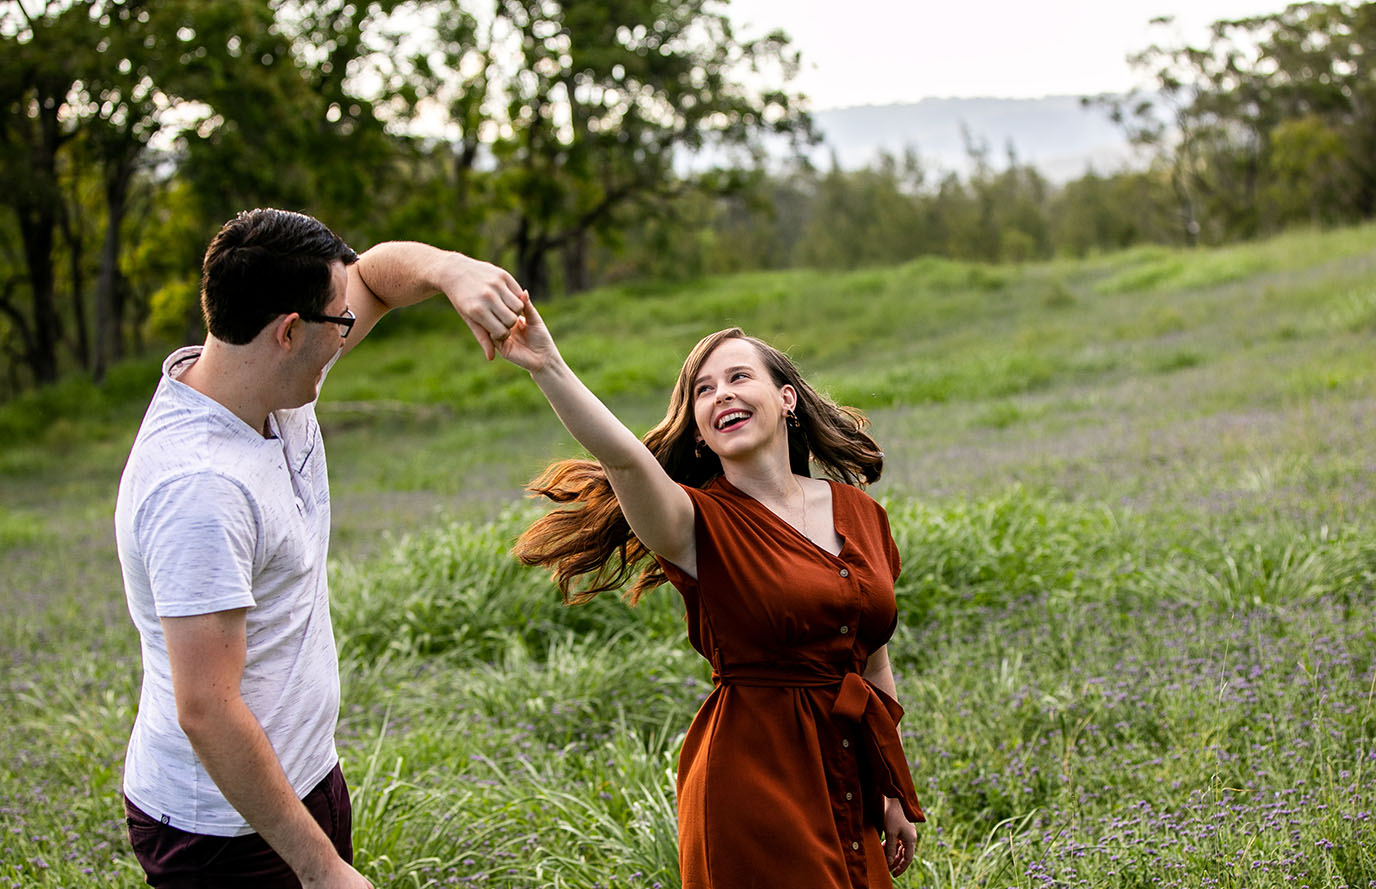 Engagement Shoot - couple dancing in field